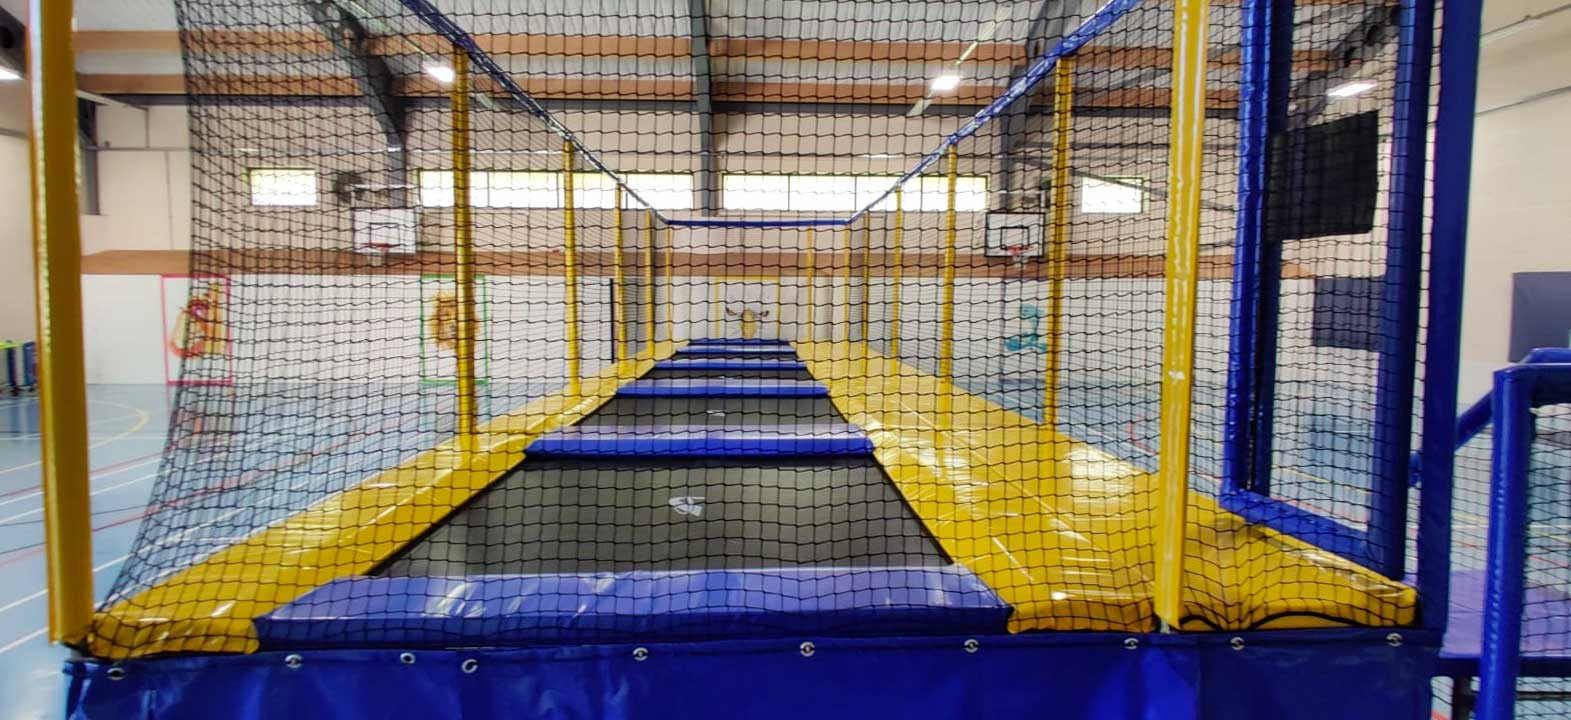 Trampolines for soft play and high footfall events